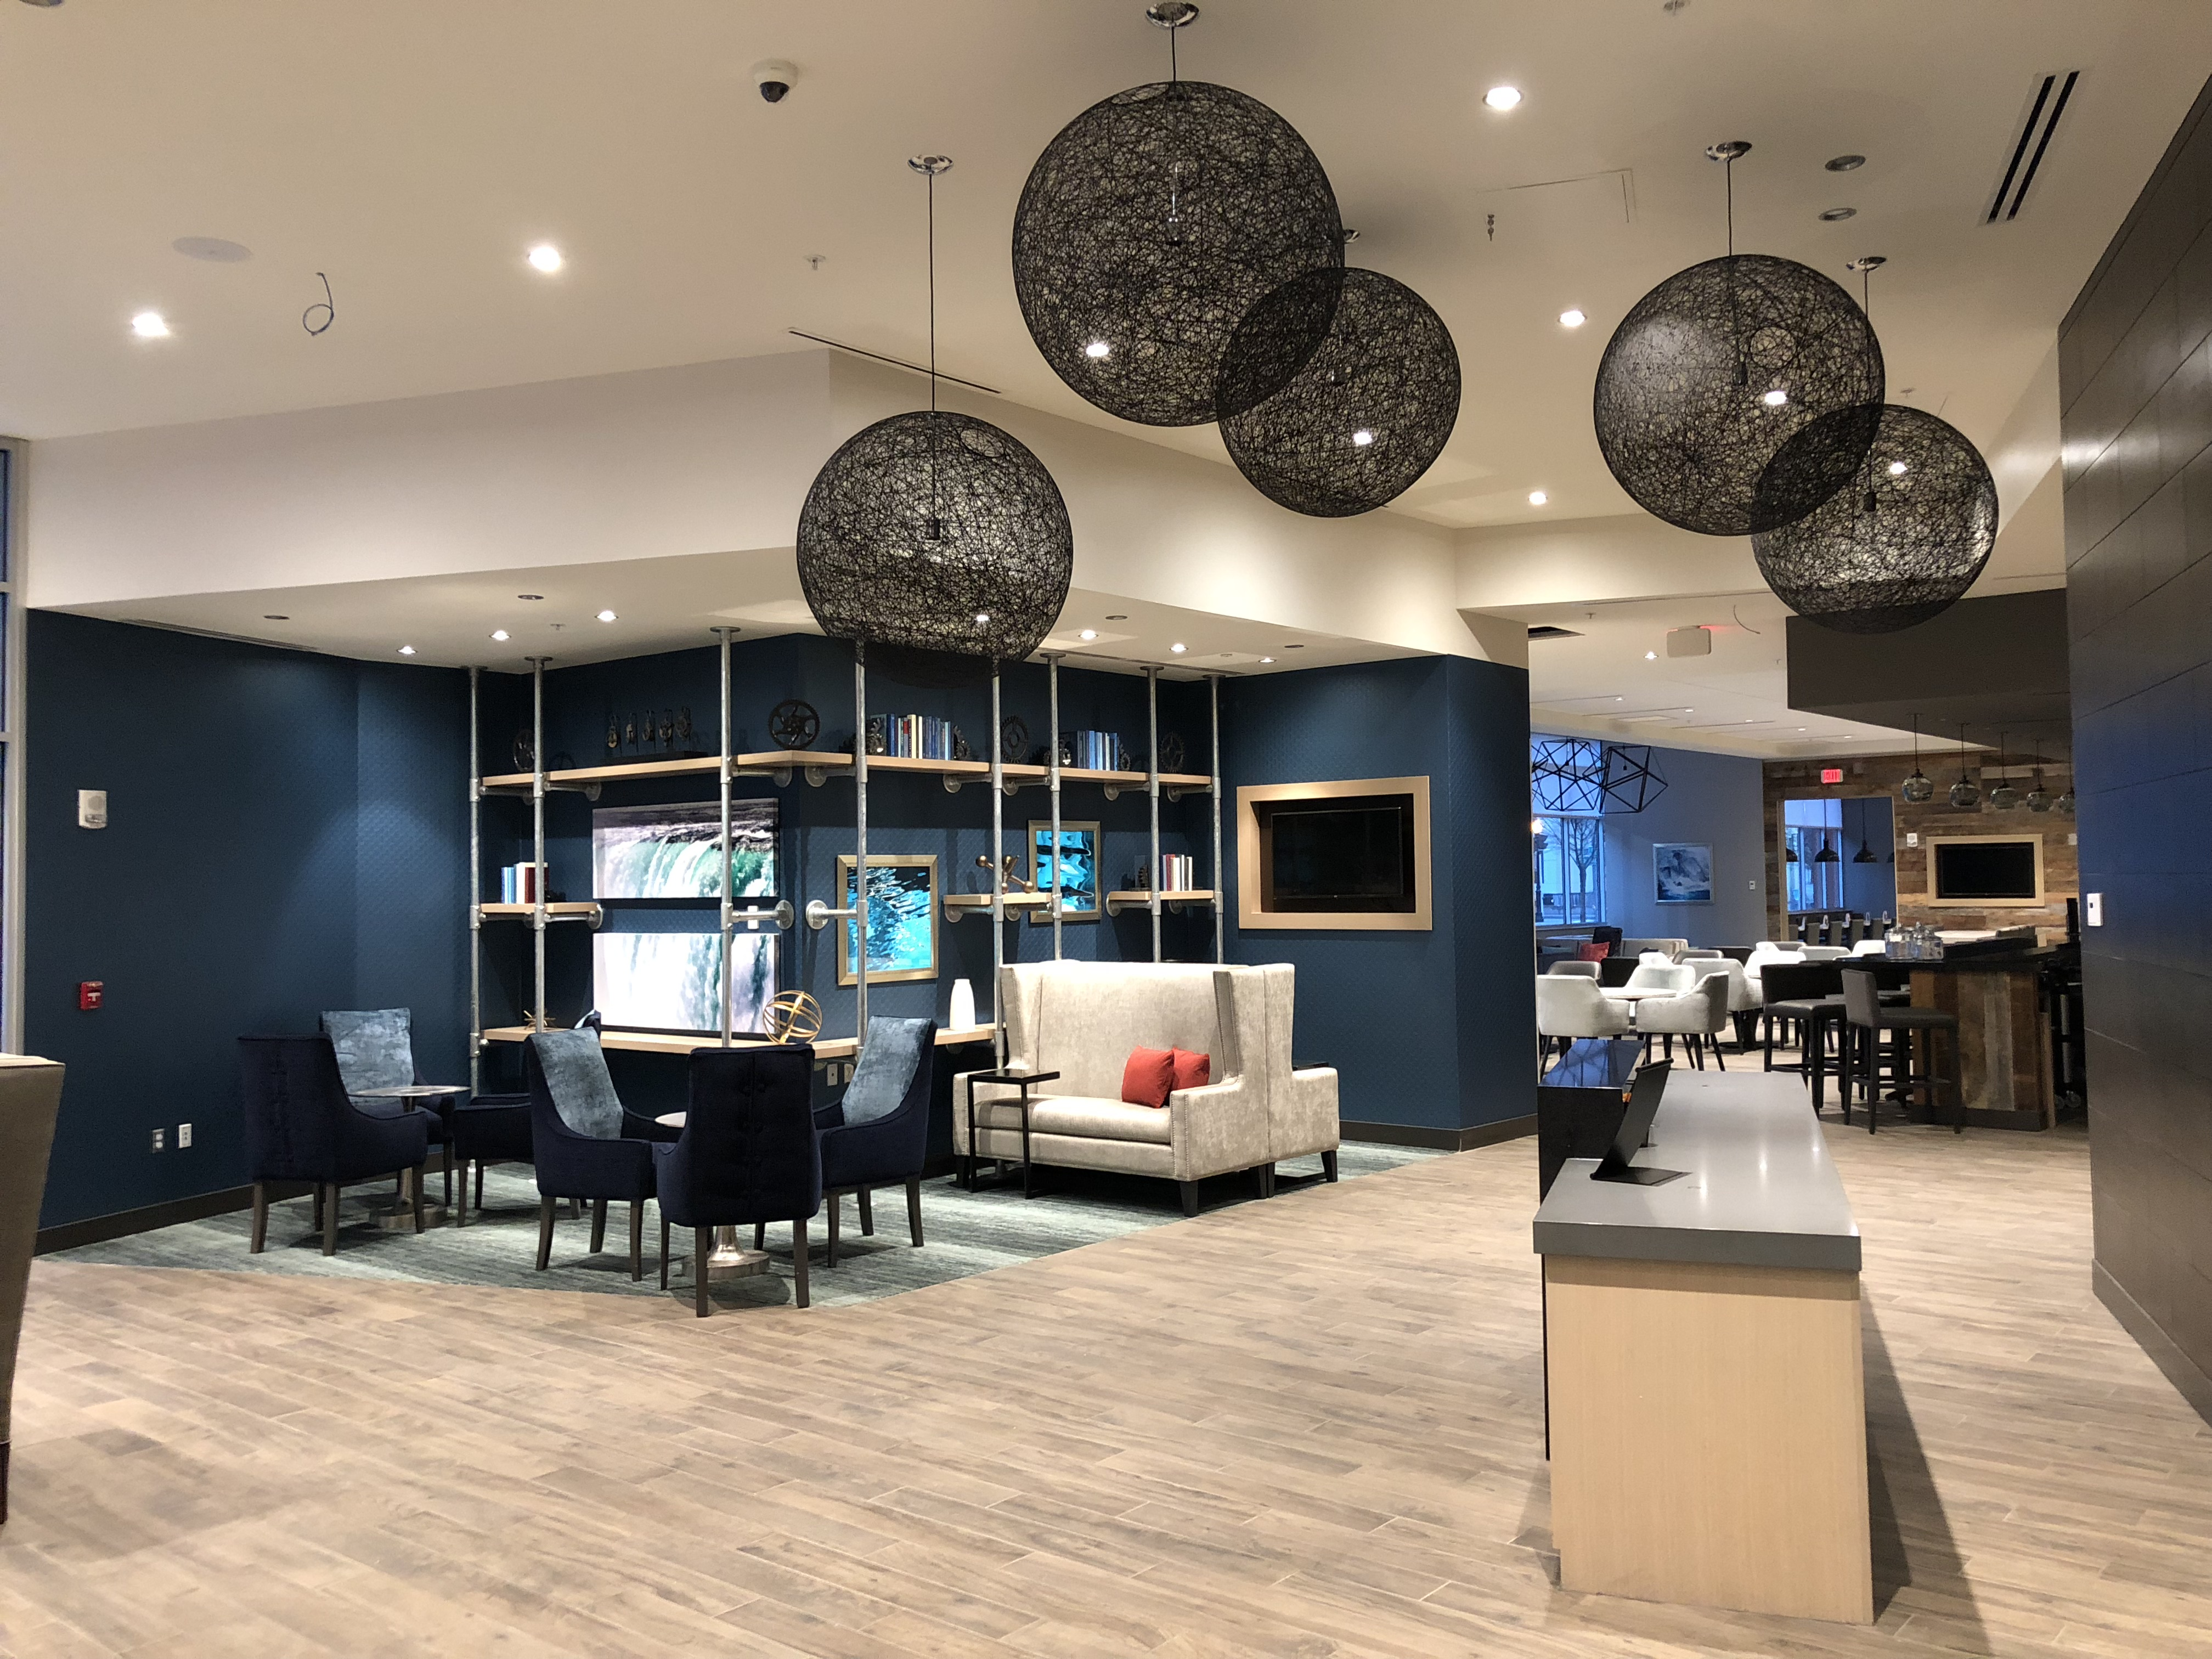 HYATT PLACE NIAGARA FALLS CELEBRATES OFFICIAL OPENING